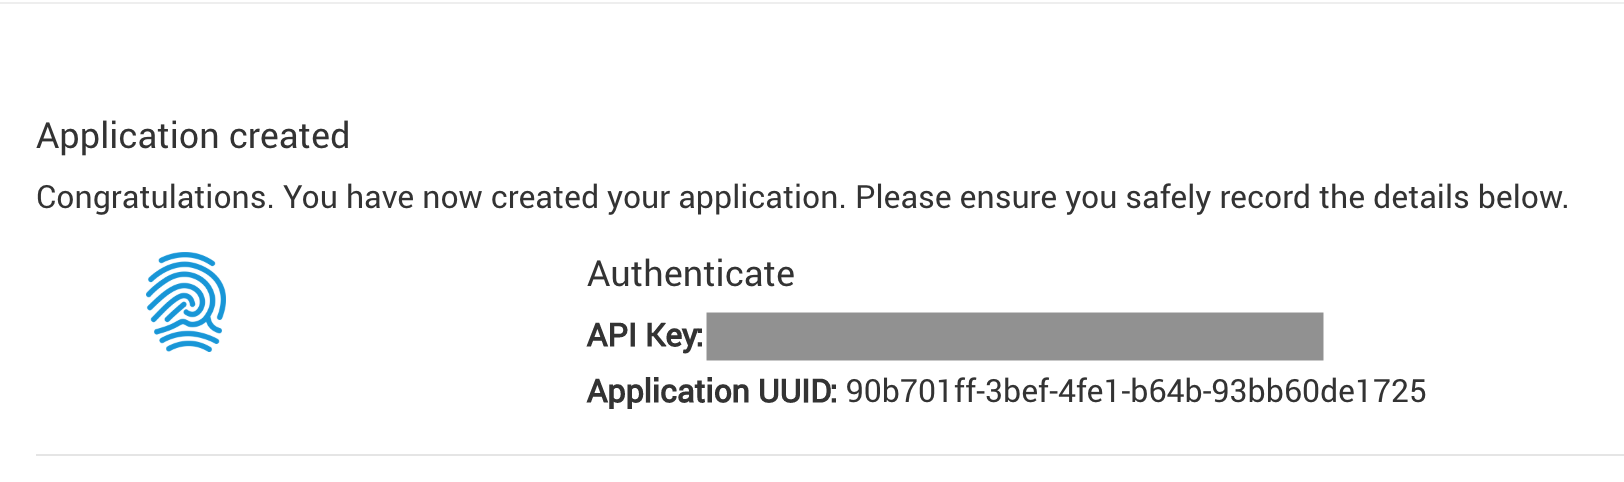 Haventec Console create authenticate application screenshot